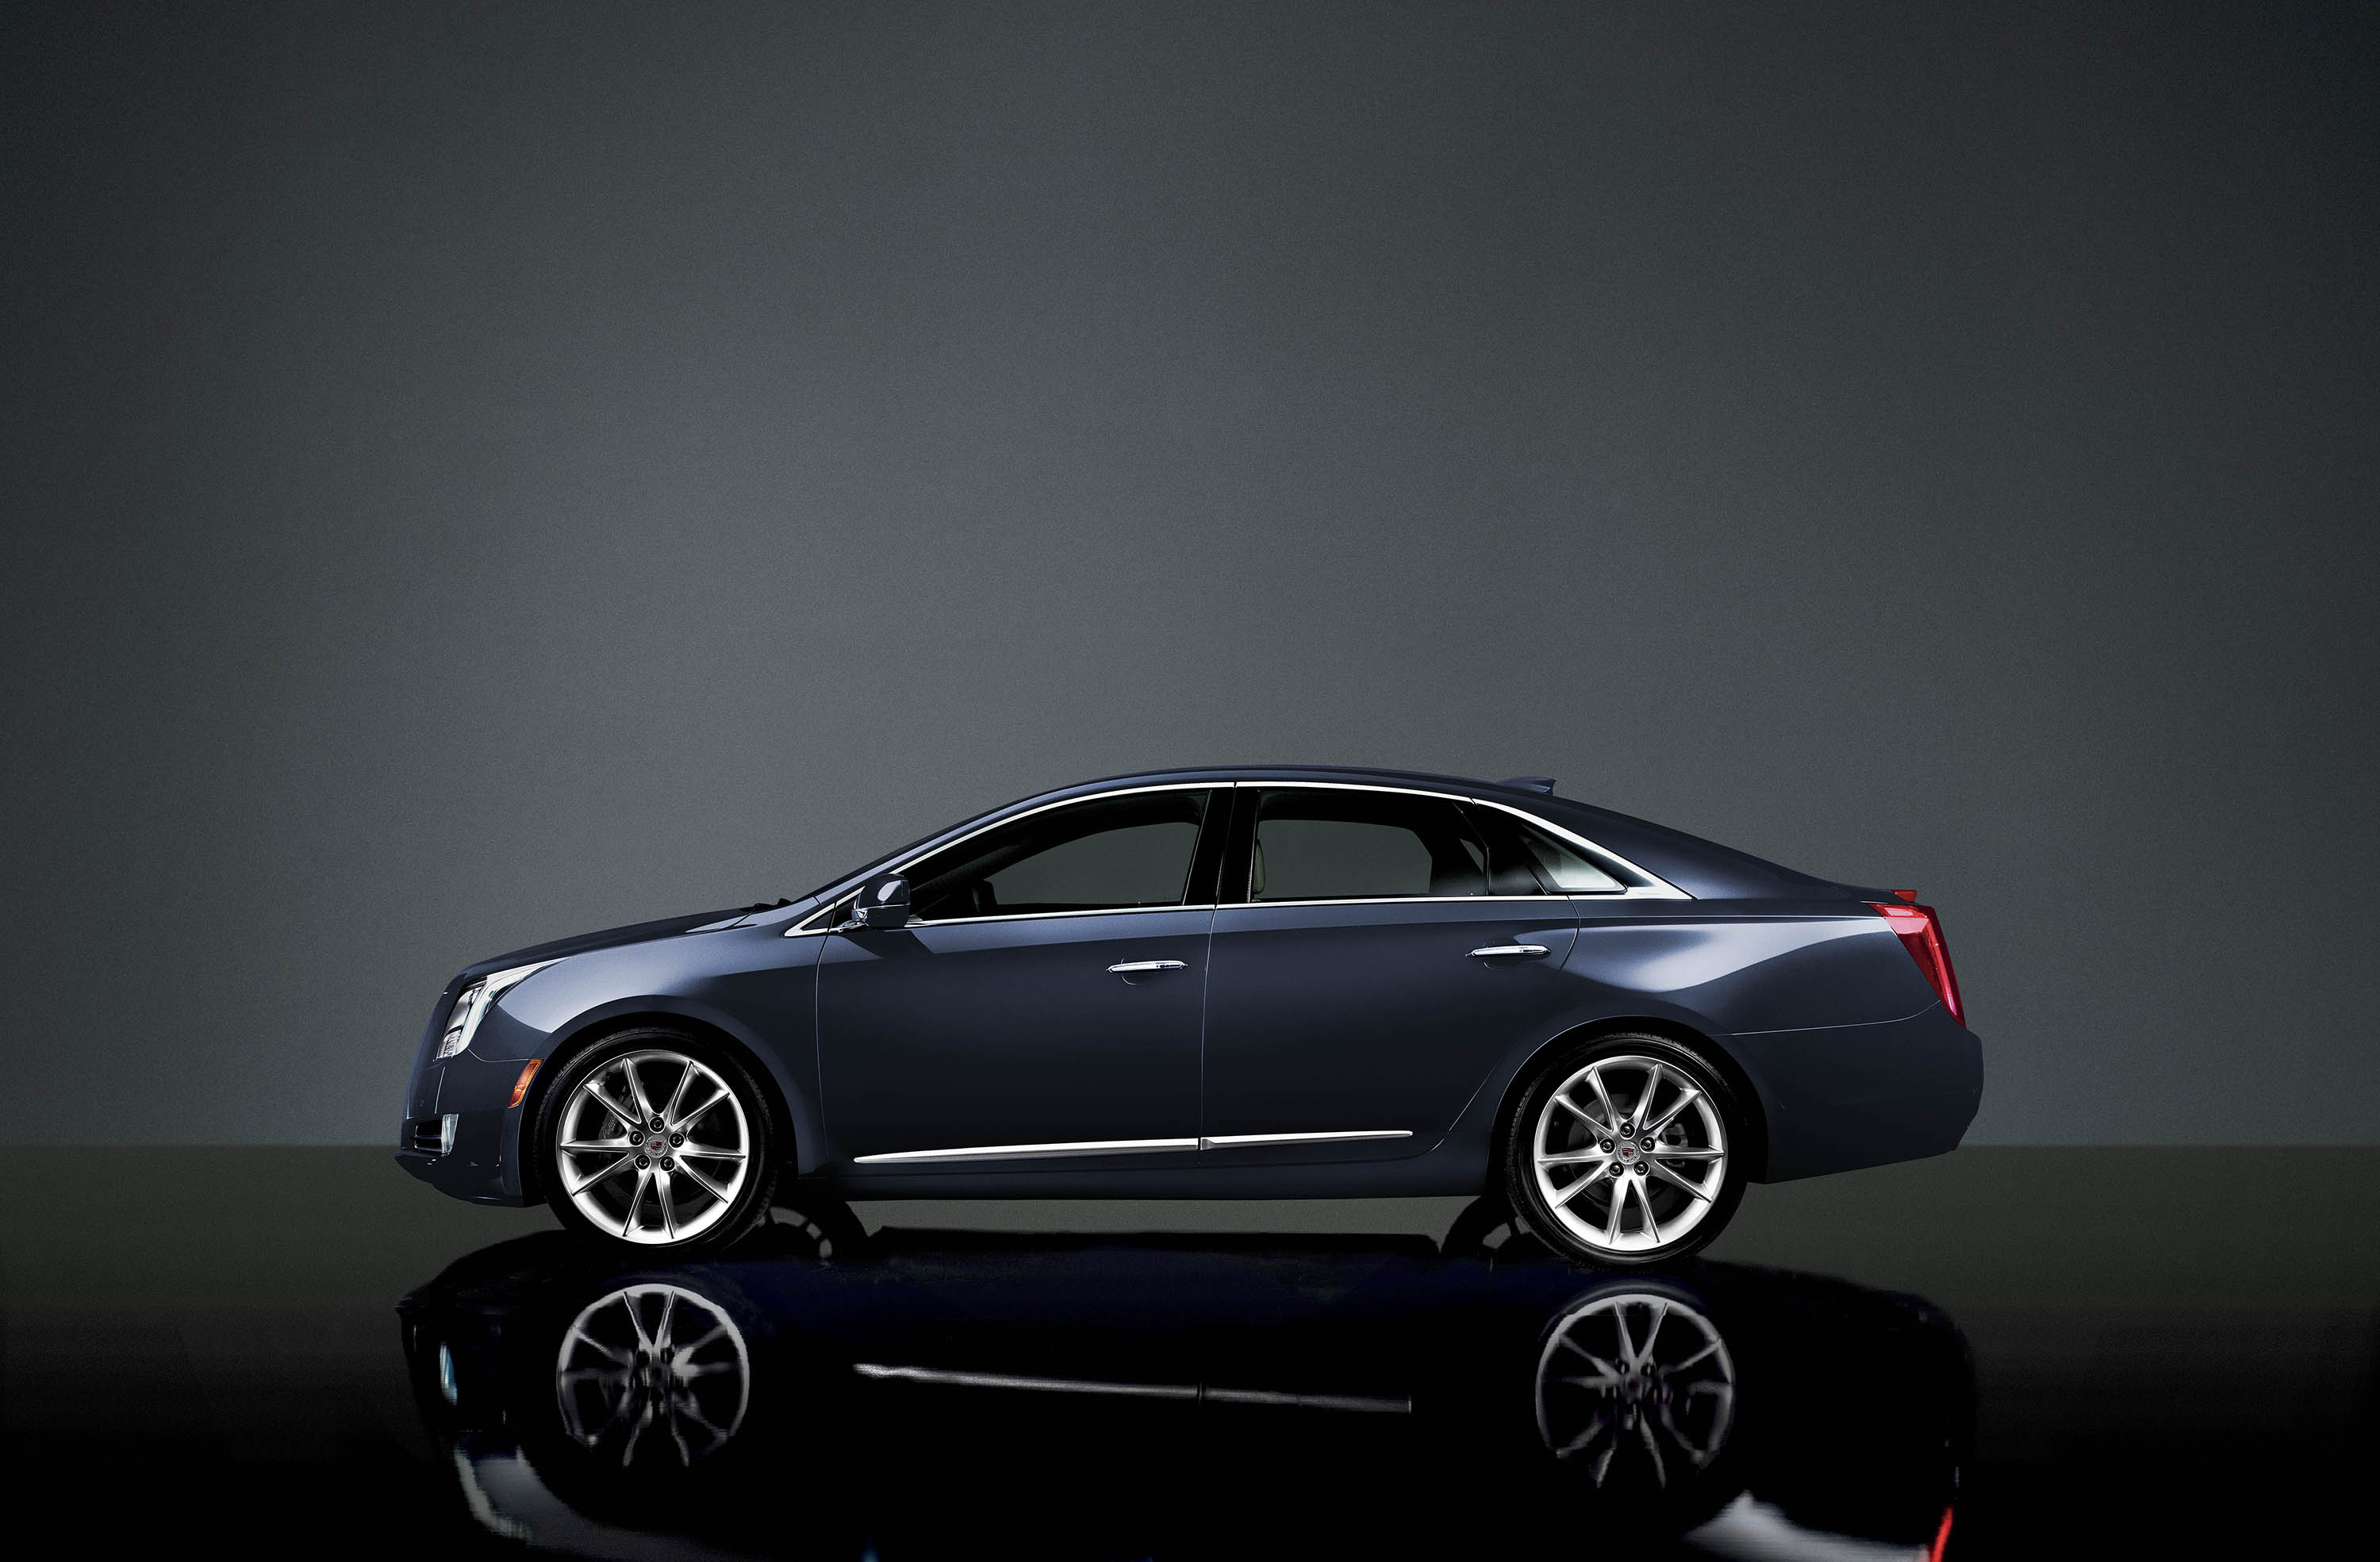 xts thecanadianwheels for more pin cars now ats cadillac visit ca